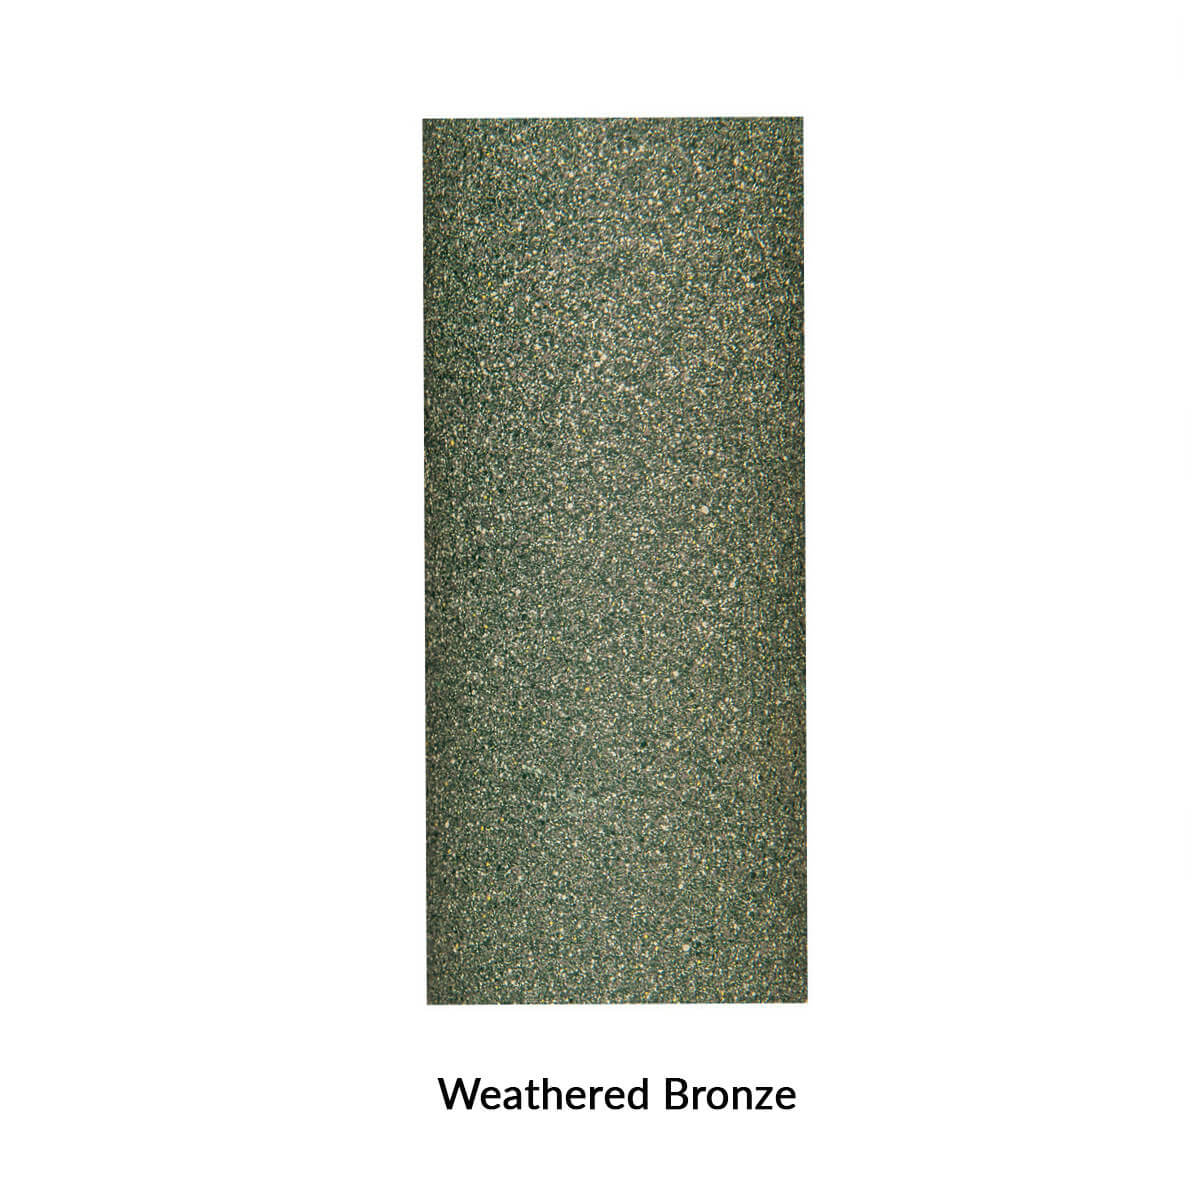 weathered-bronze.jpg